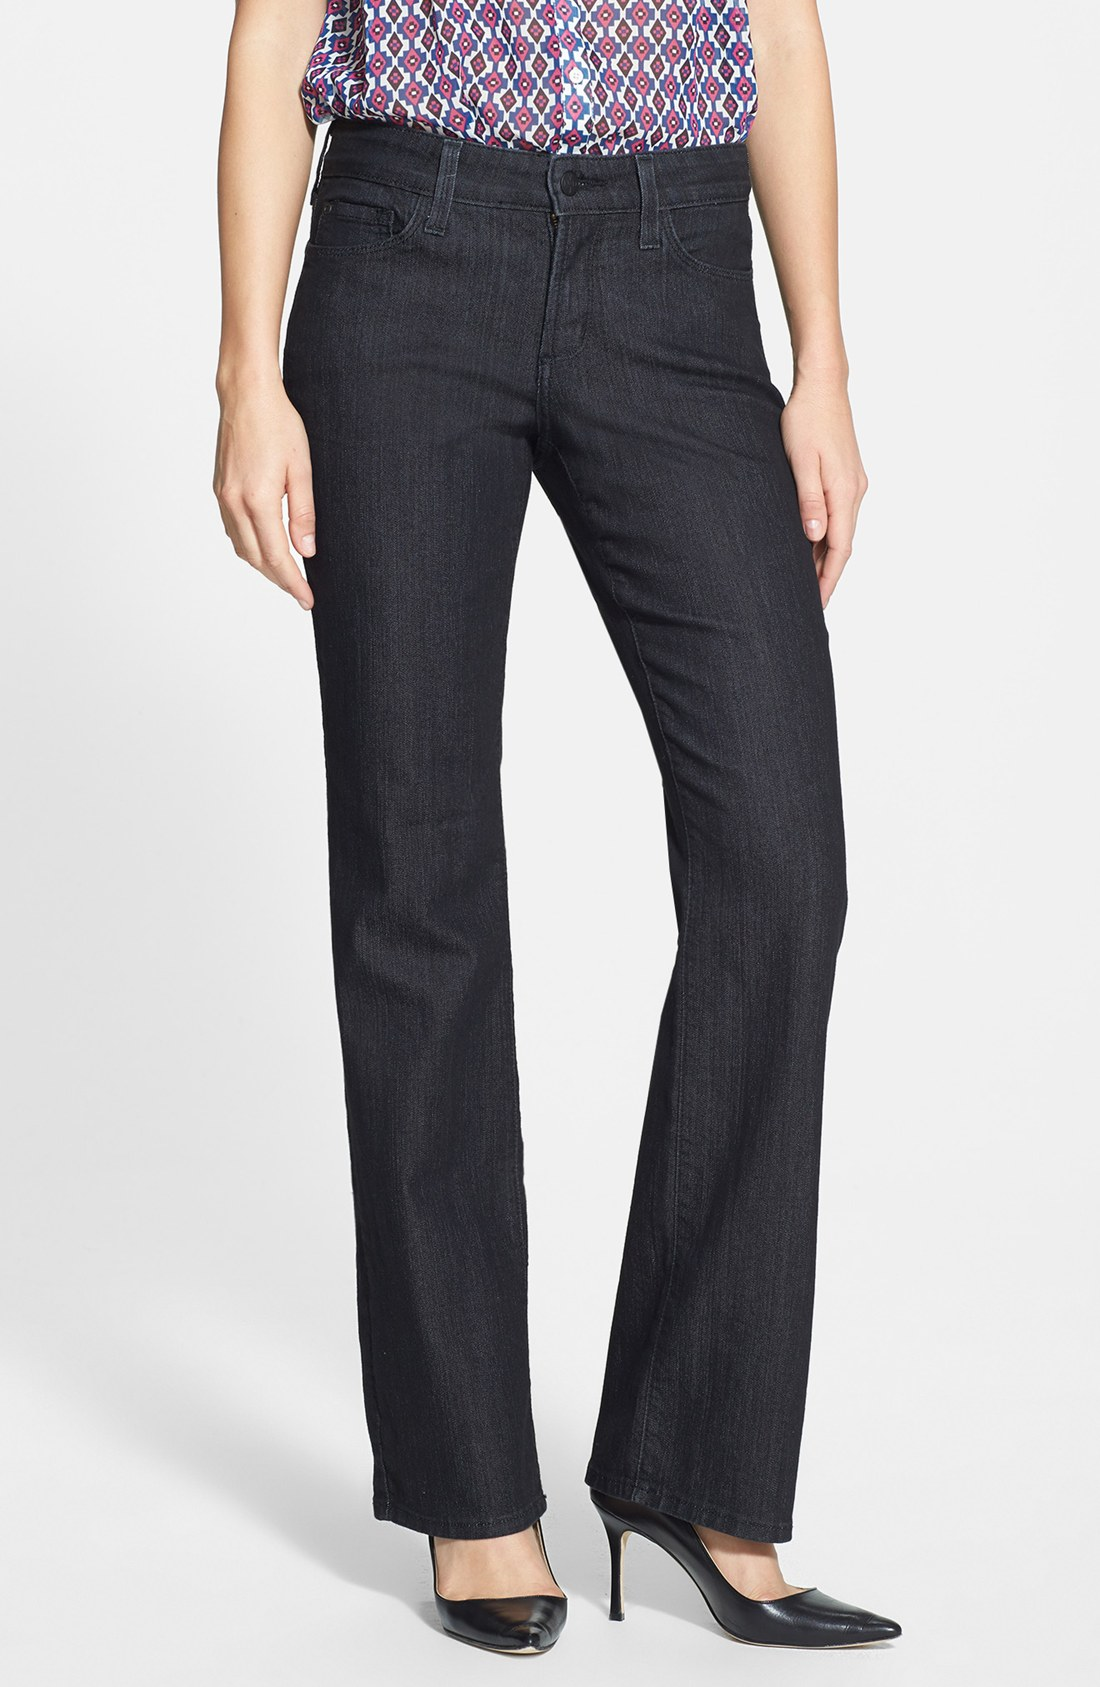 Nydj marilyn embroidered pocket stretch straight leg jeans